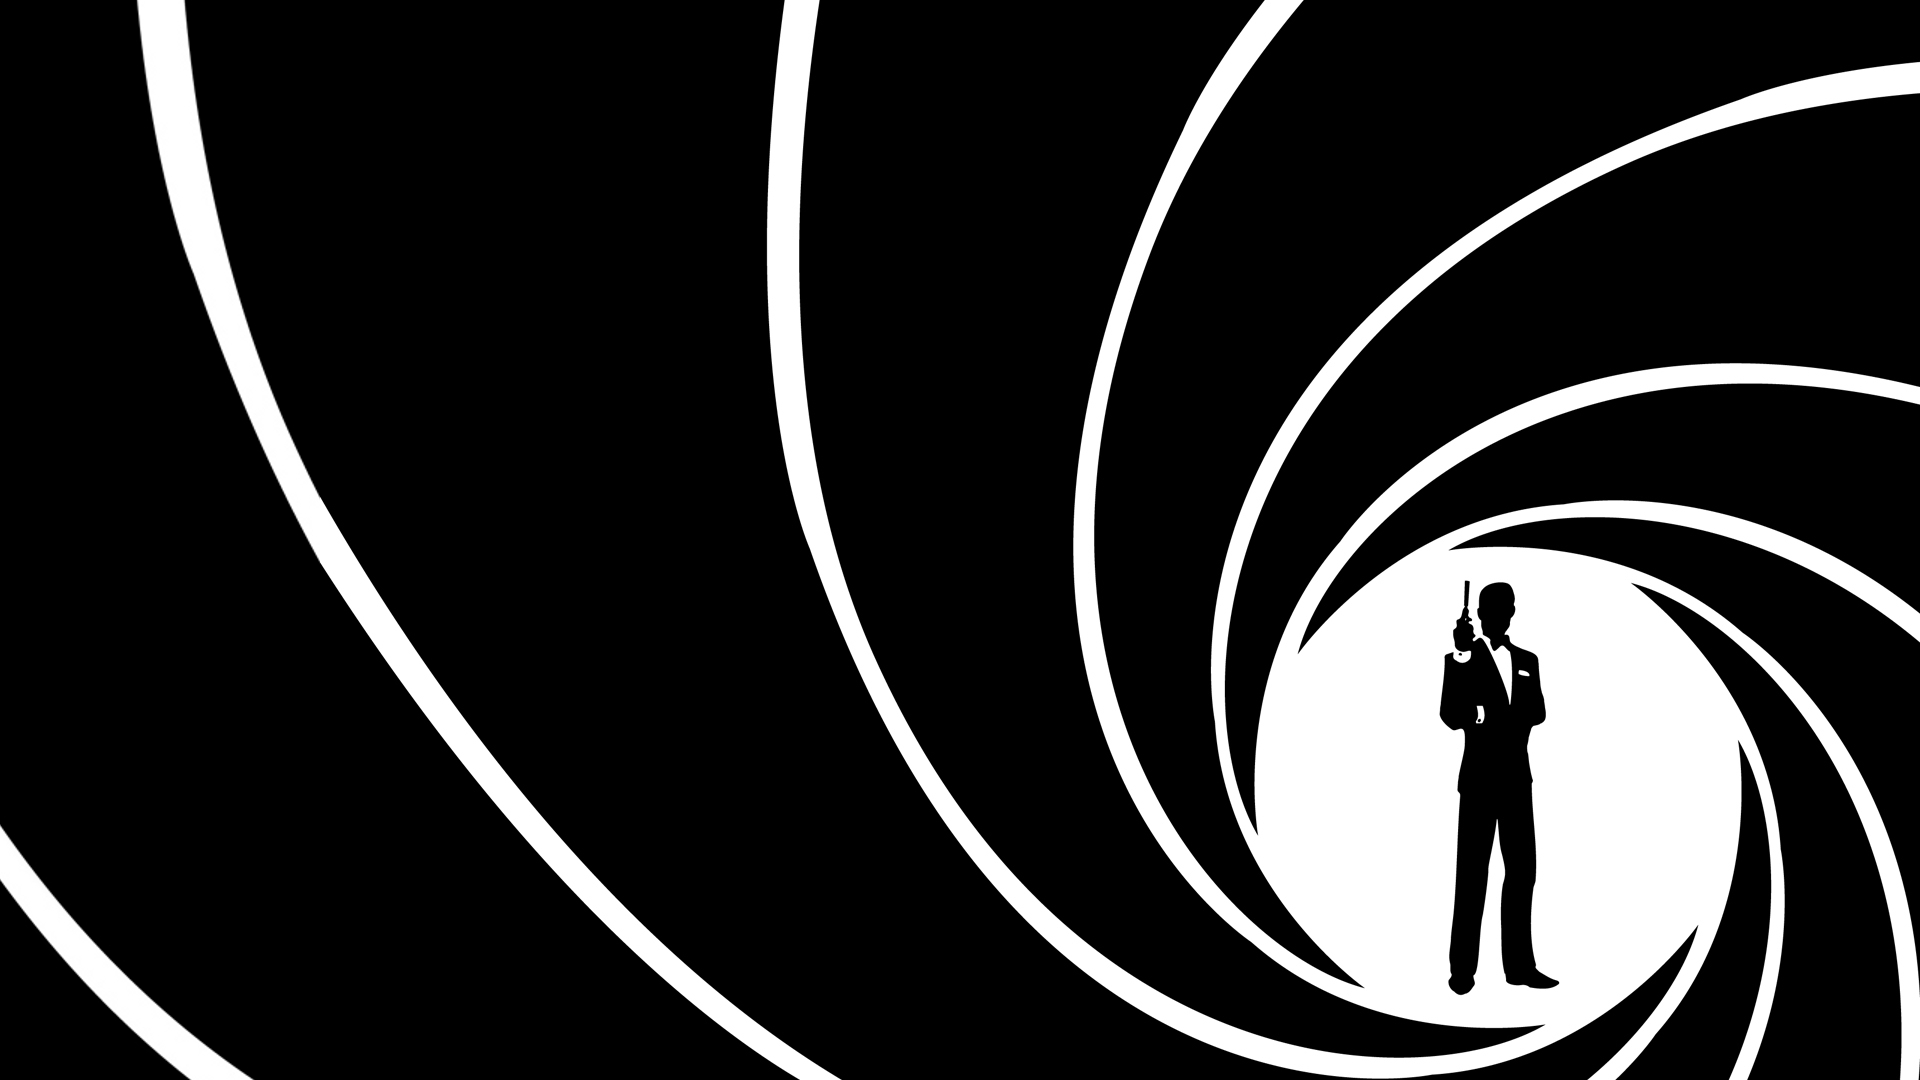 James Bond Res: 1920x1080 HD / Size:198kb. Views: 38927